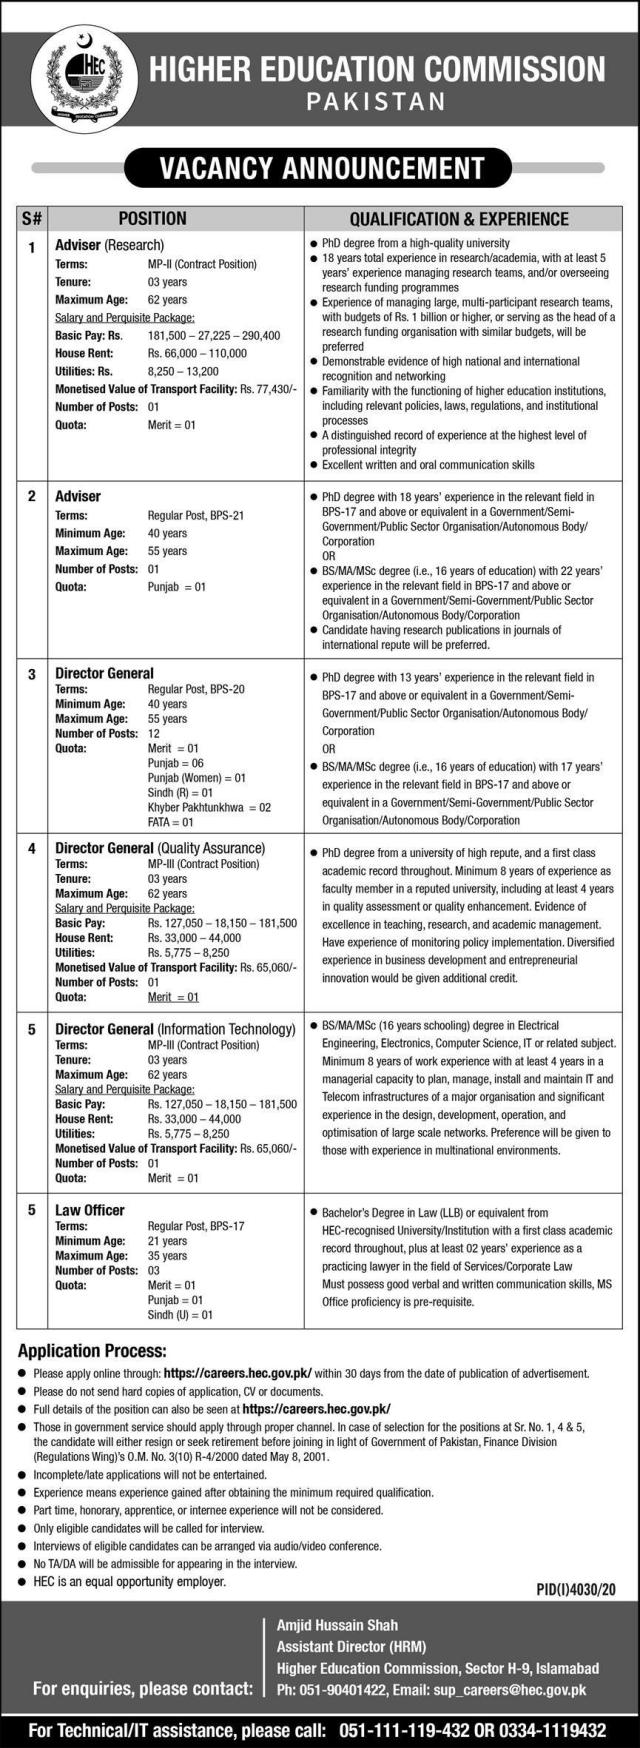 Higher Education Commission (HEC) Jobs 2021 (31-01-2021)